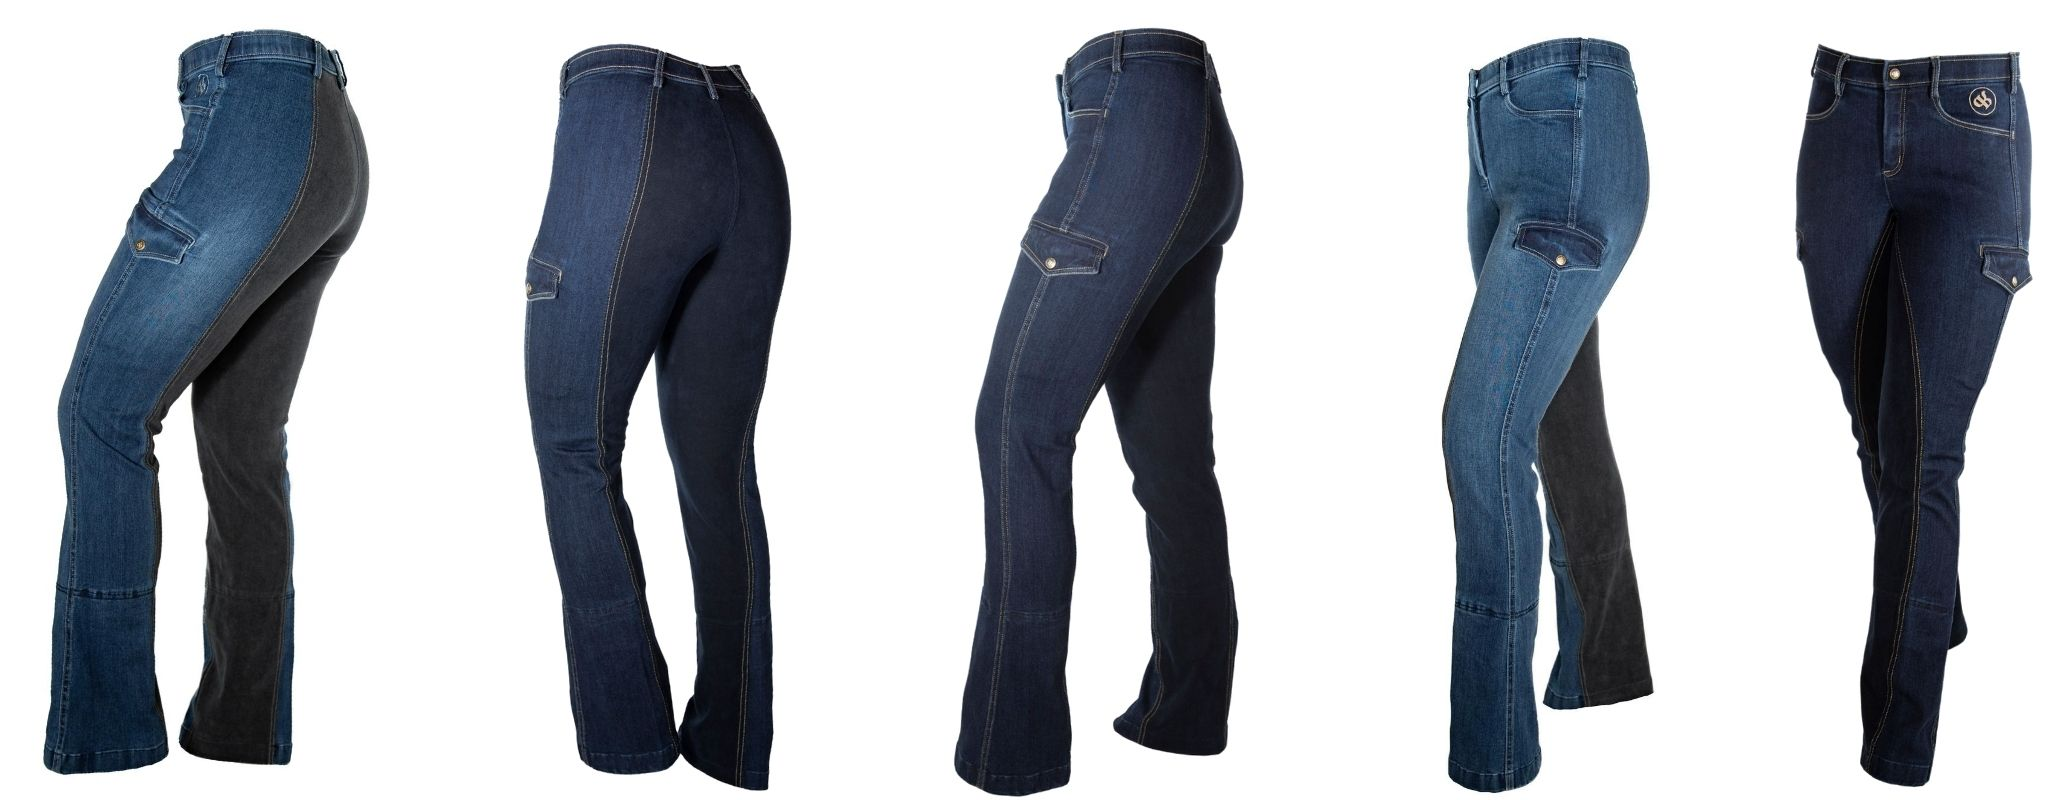 Horizon Riding Jeans Image Banner